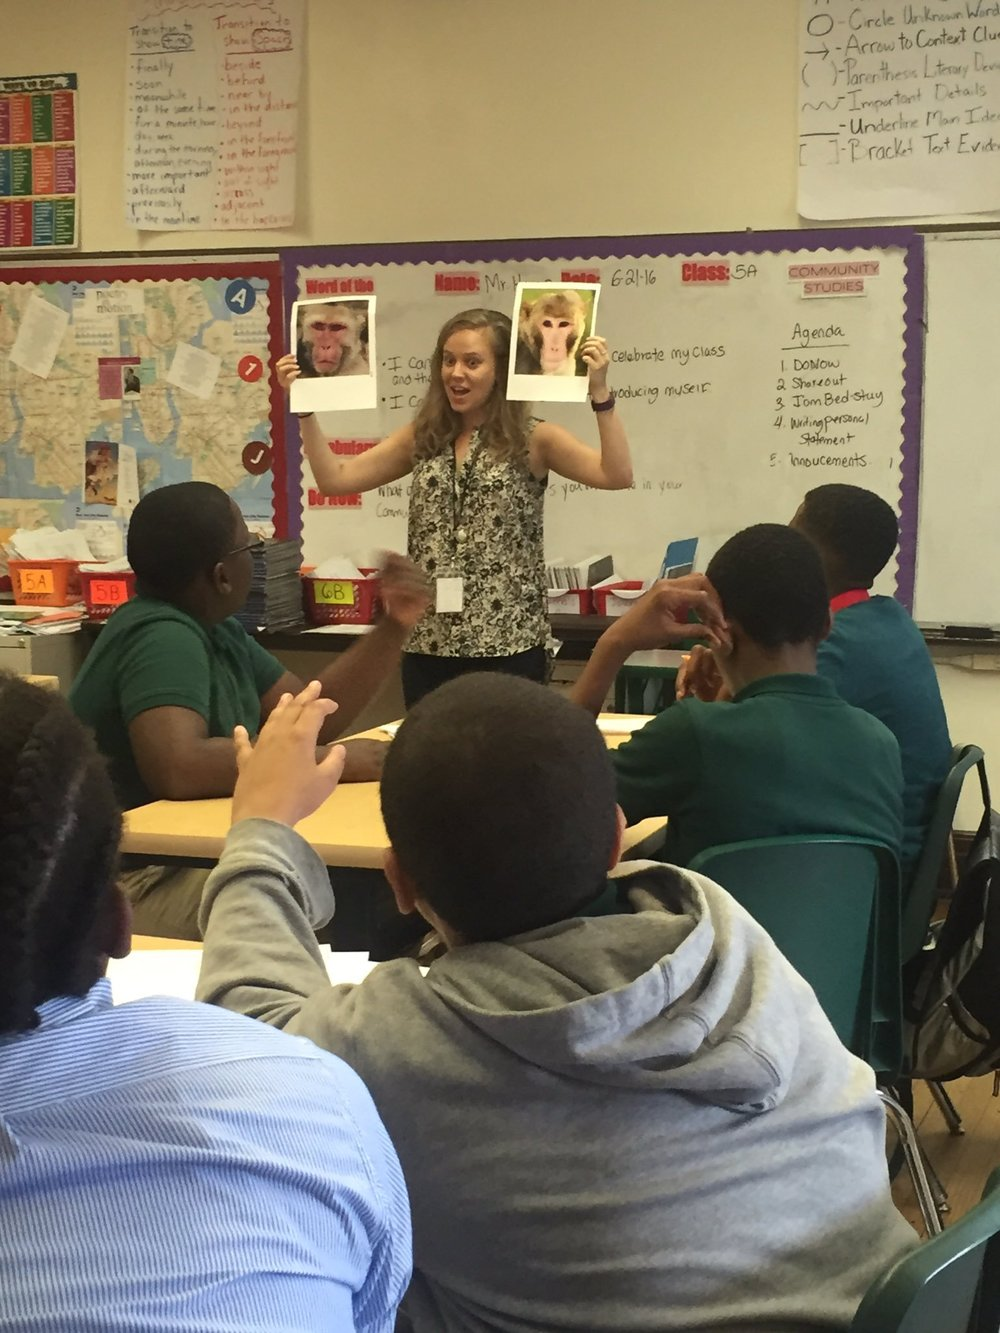 Speaking to 6th graders at a school in Brooklyn, NY